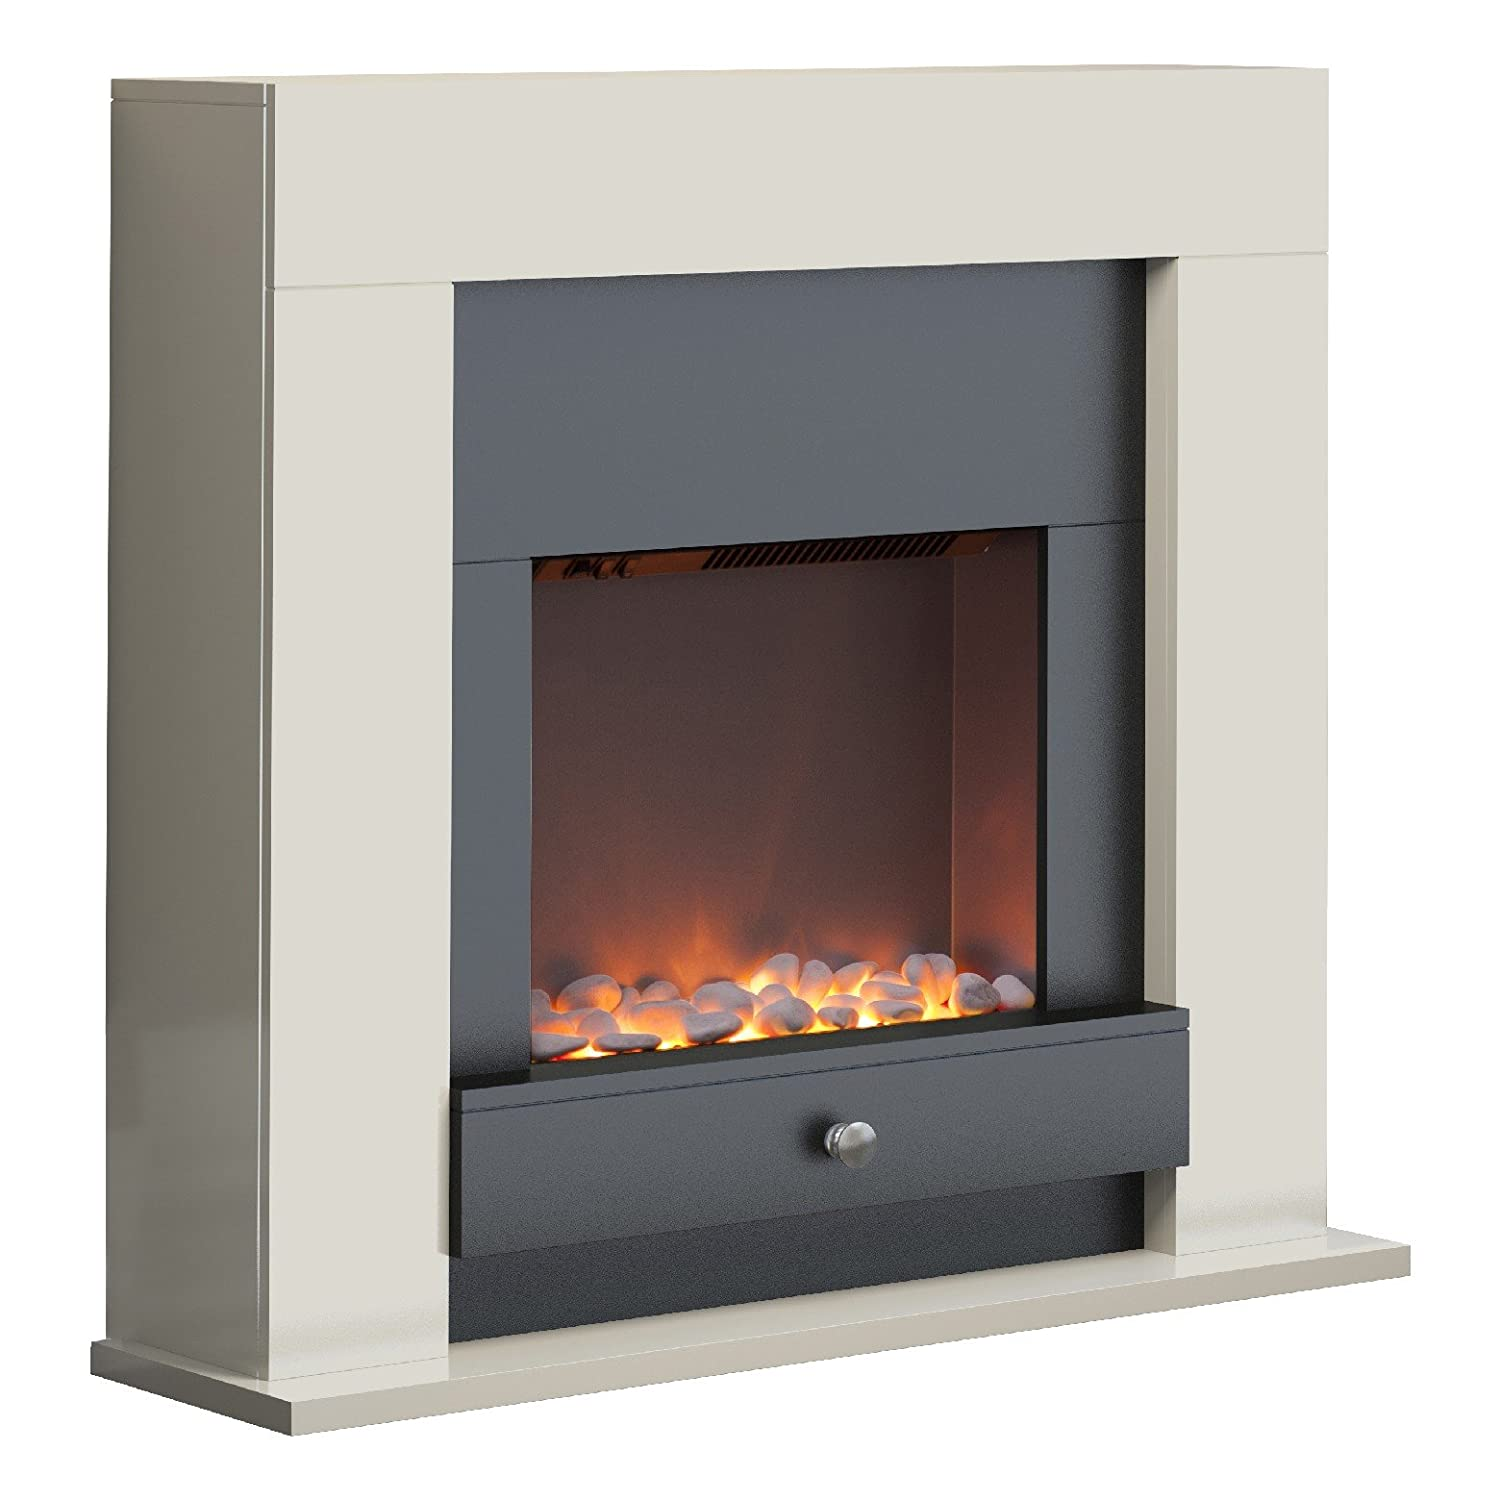 fireplaces a the www excellent home your place unlimited fireplace when how to with living room and corner of tv arrange decor in